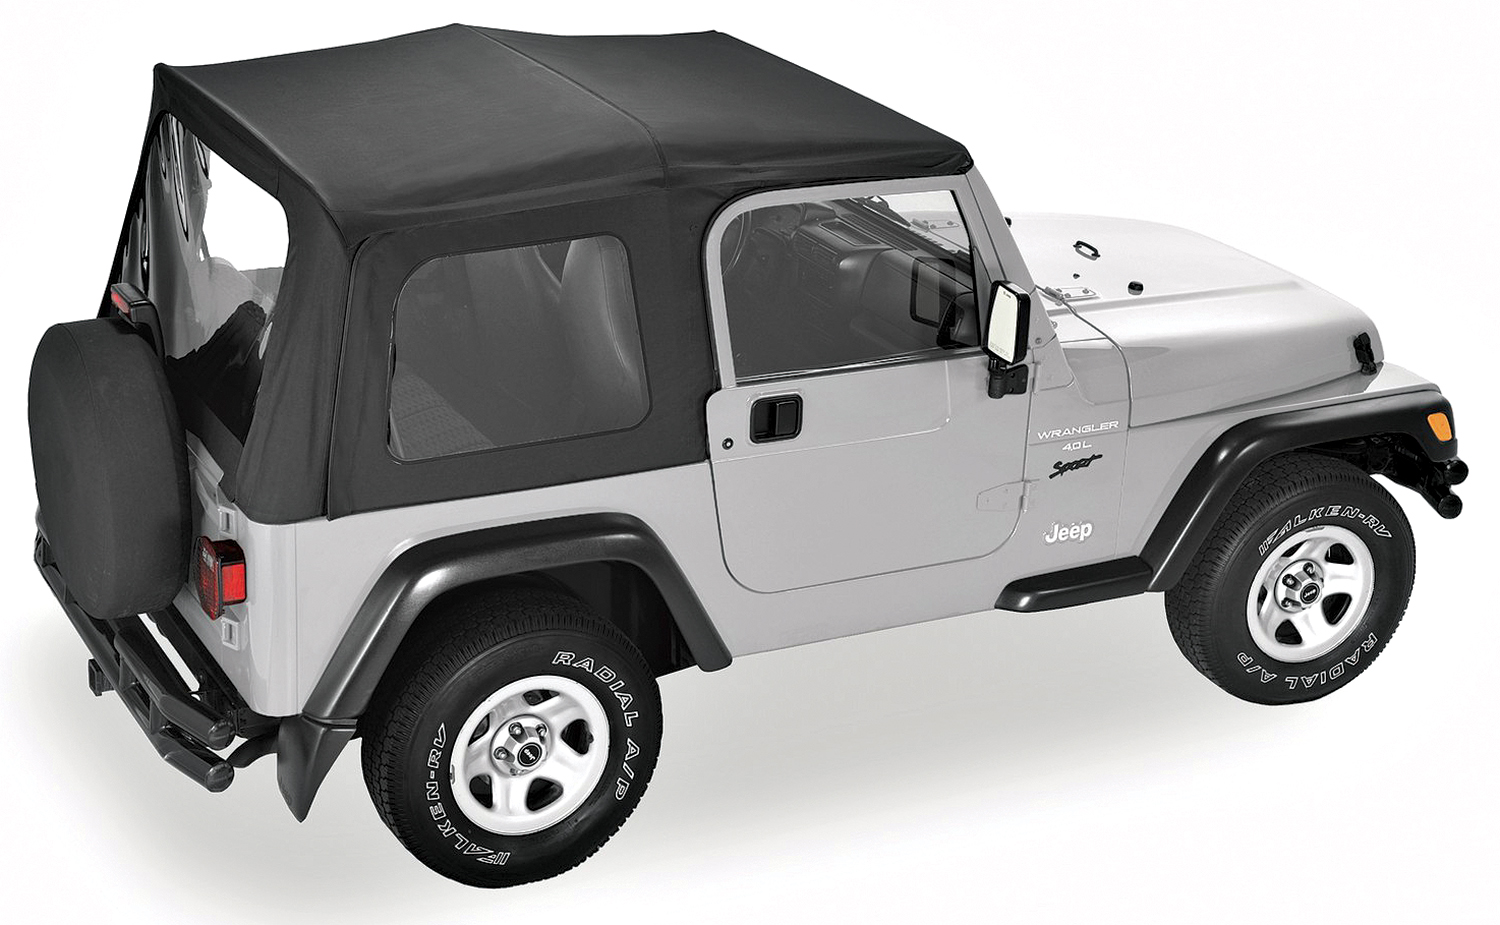 Pavement Ends 51130-15 By Bestop Black Denim Replay OEM Replacement Soft Top Clear Windows Jeep Wrangler 1988-1995